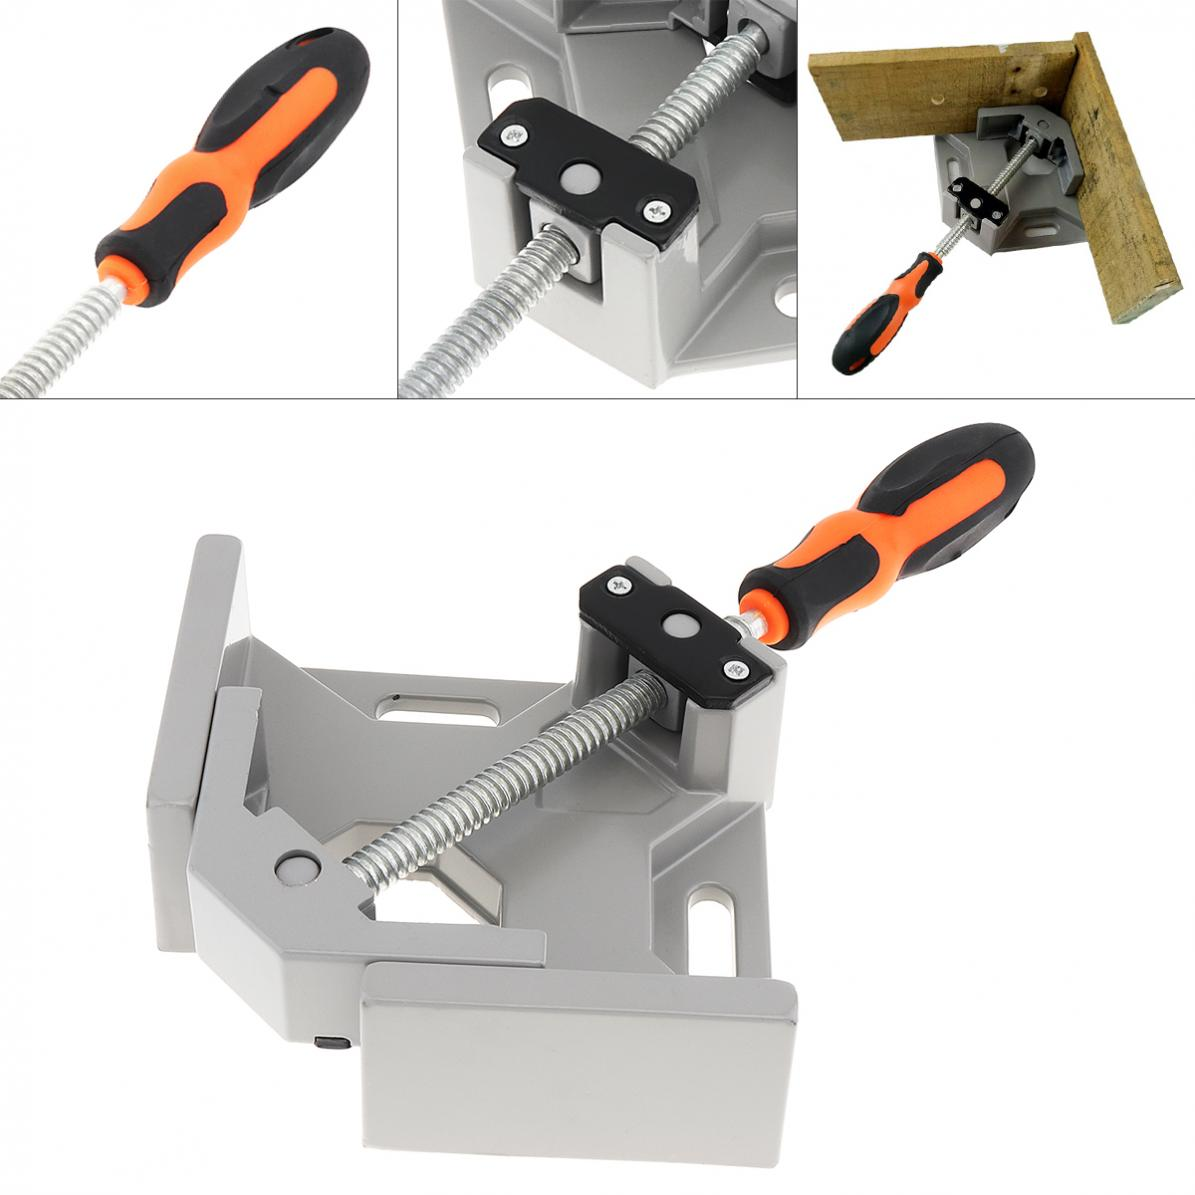 details about 90 degree corner right angle clamp vice grip welding  woodworking aluminium